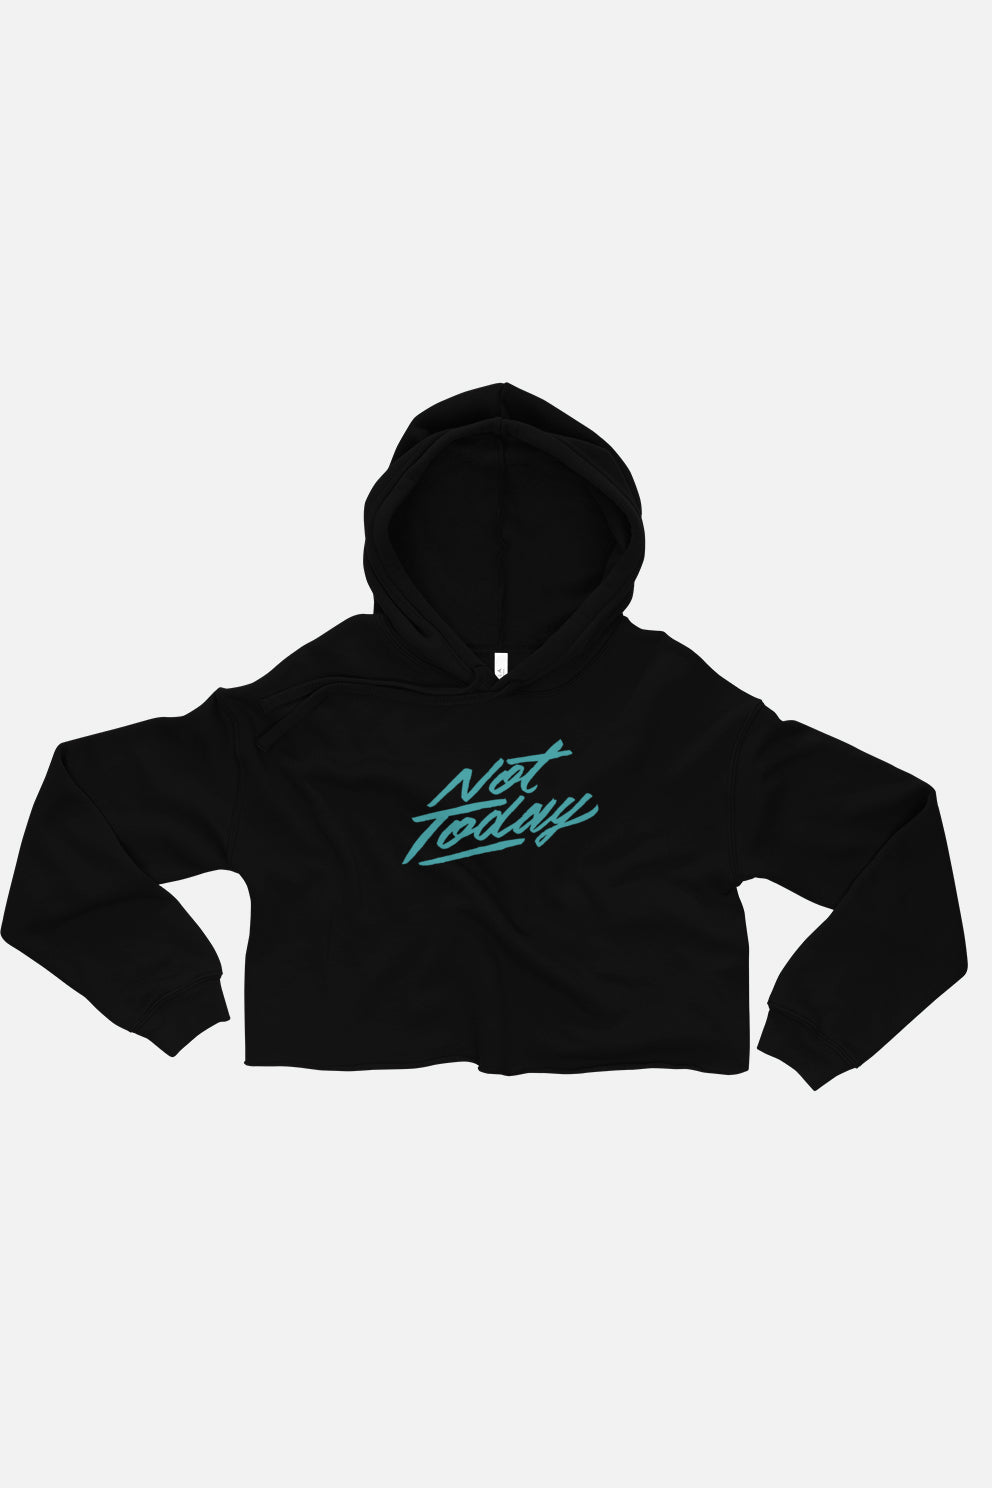 Not Today Fitted Crop Hoodie